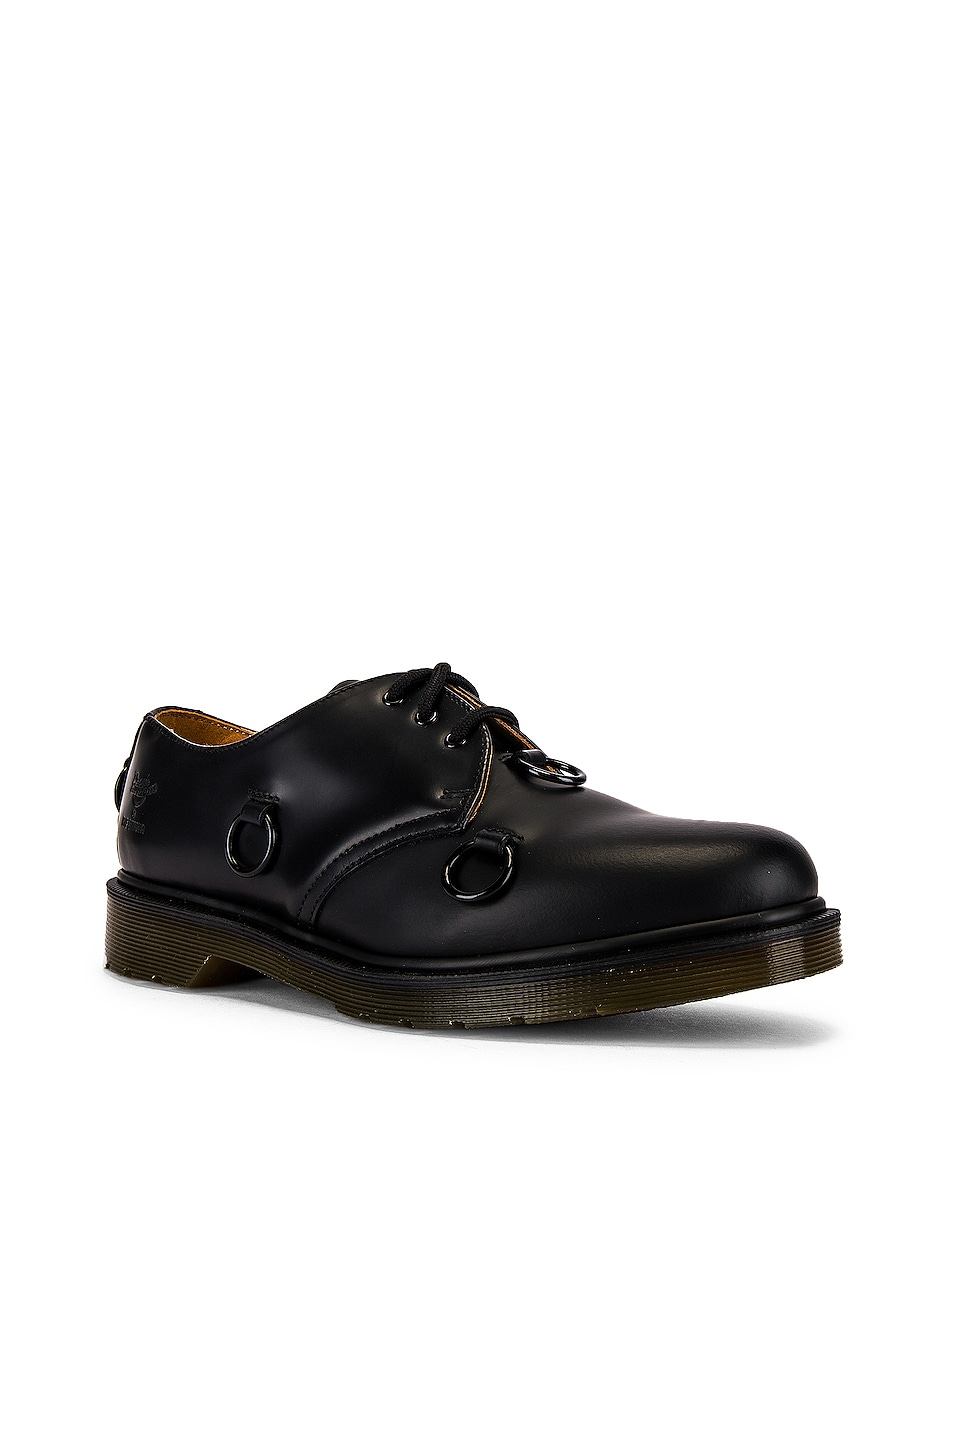 Image 1 of Raf Simons Dr. Martens Low Nickle Rings Shoe in Black